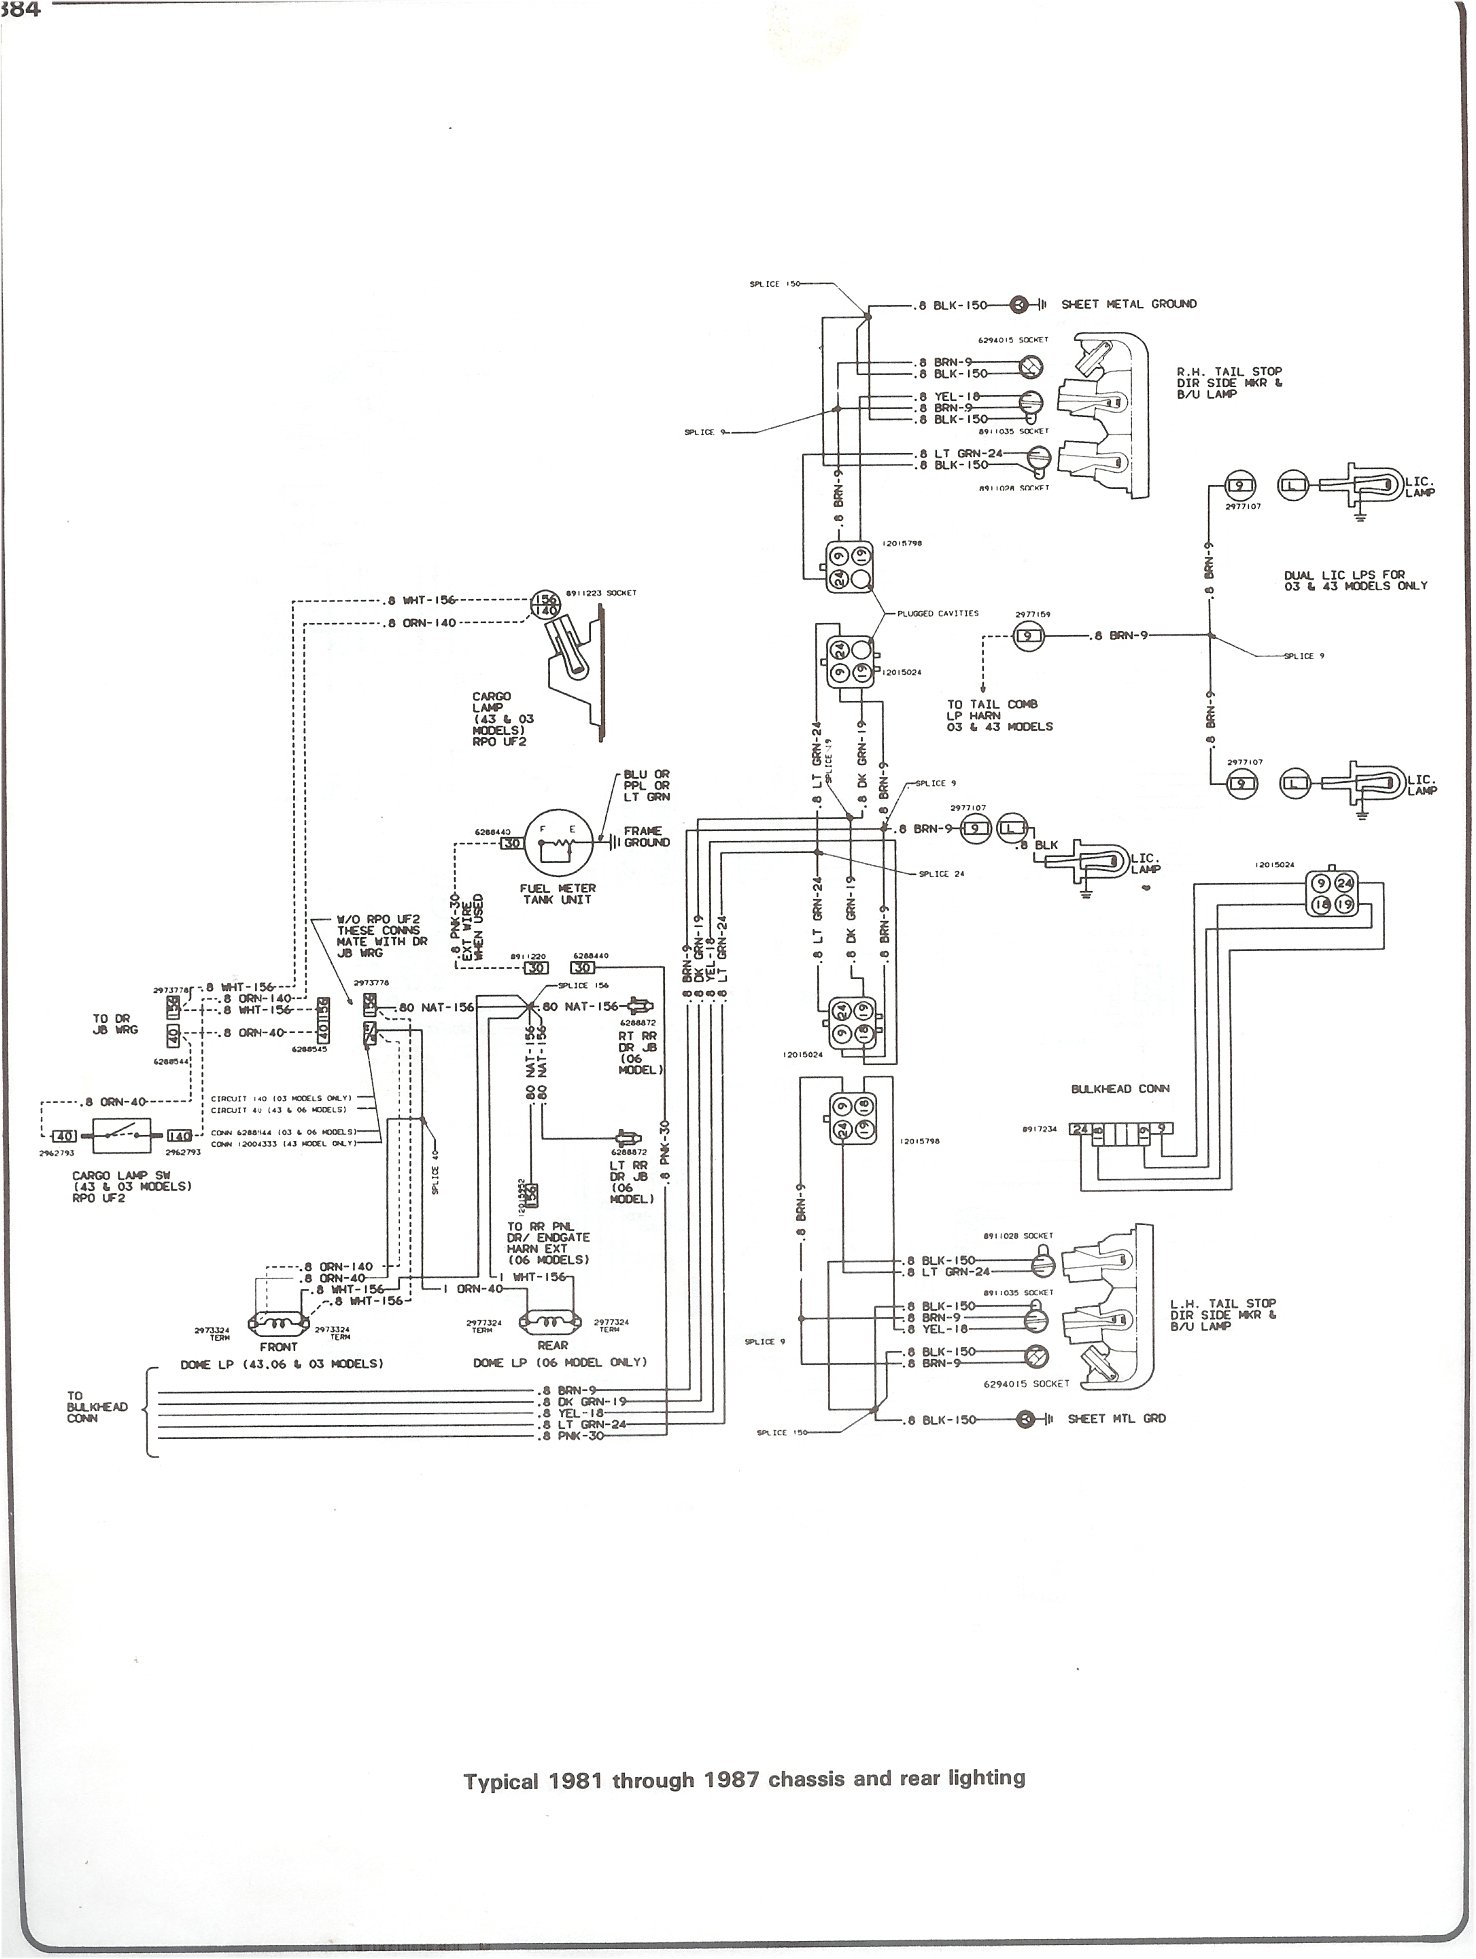 1987 C10 Wiring Diagram Data Oreo 1993 Chevy Blazer Manual E Books 1966 Truck